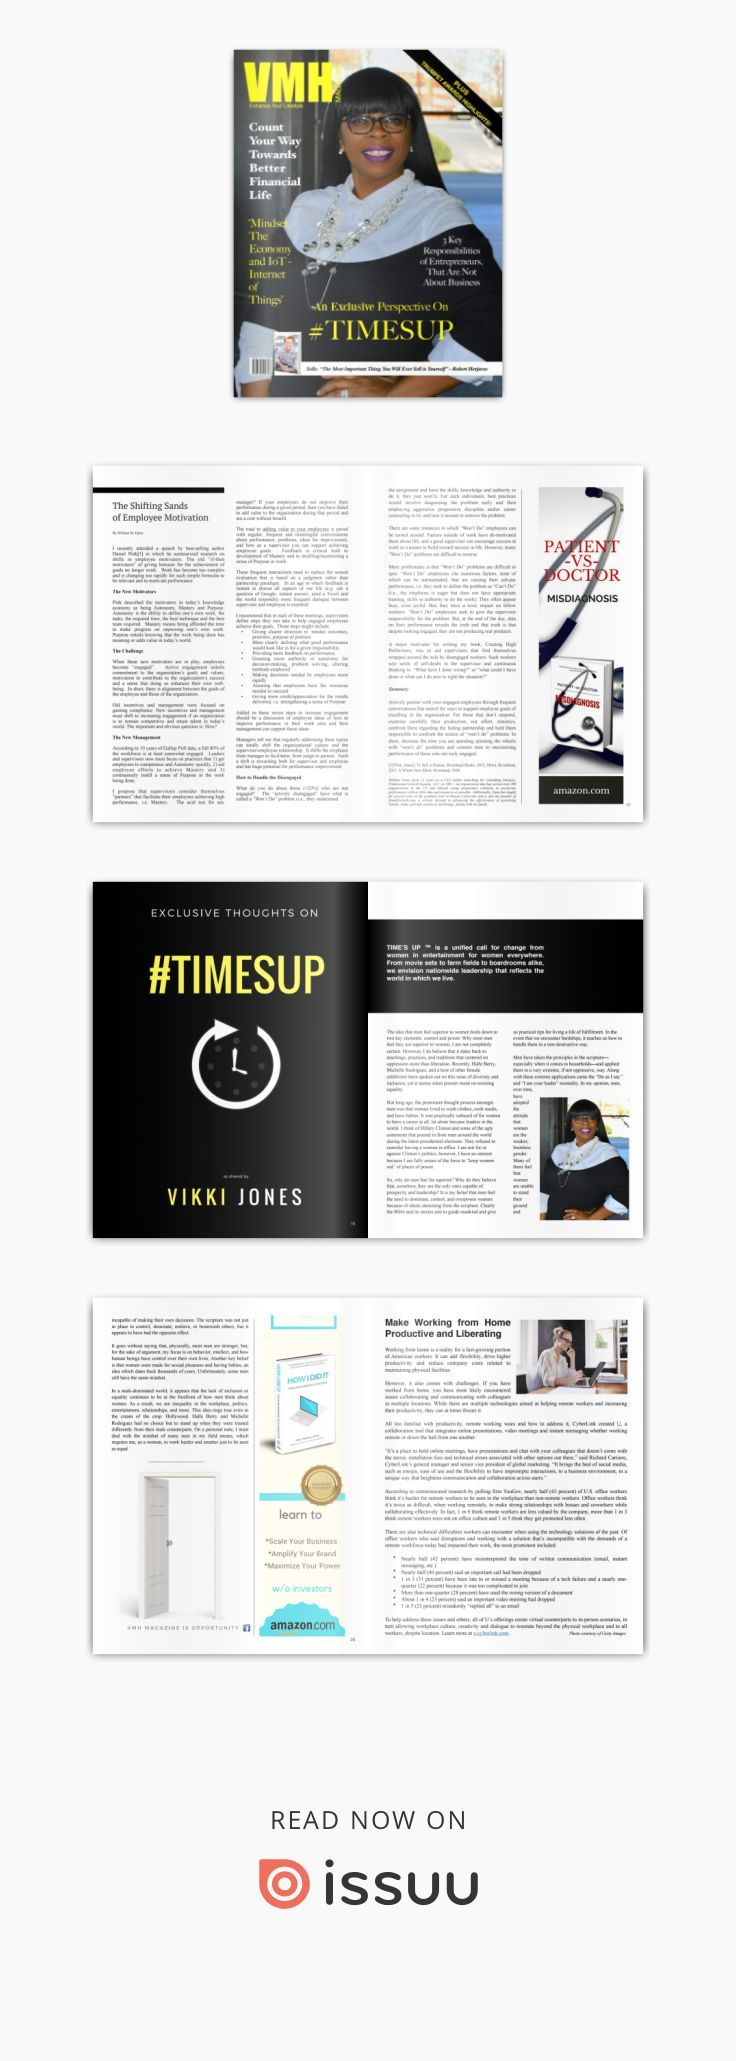 VMH Magazine - February 2018  Featuring: An Exclusive Perspective on #TIMESUP | Resolve to Improve Your Financial Health | 26th Annual Trumpet Awards Highlights | Luxury Realtor, Melissa Miller Success Tips | Digitally Transform Your Business| Author/Shark Tank's Robert Herjavec  'In business you either grow fast or die slowly.' Plus, everyday tips for a rewarding life of success, fitness and good health!